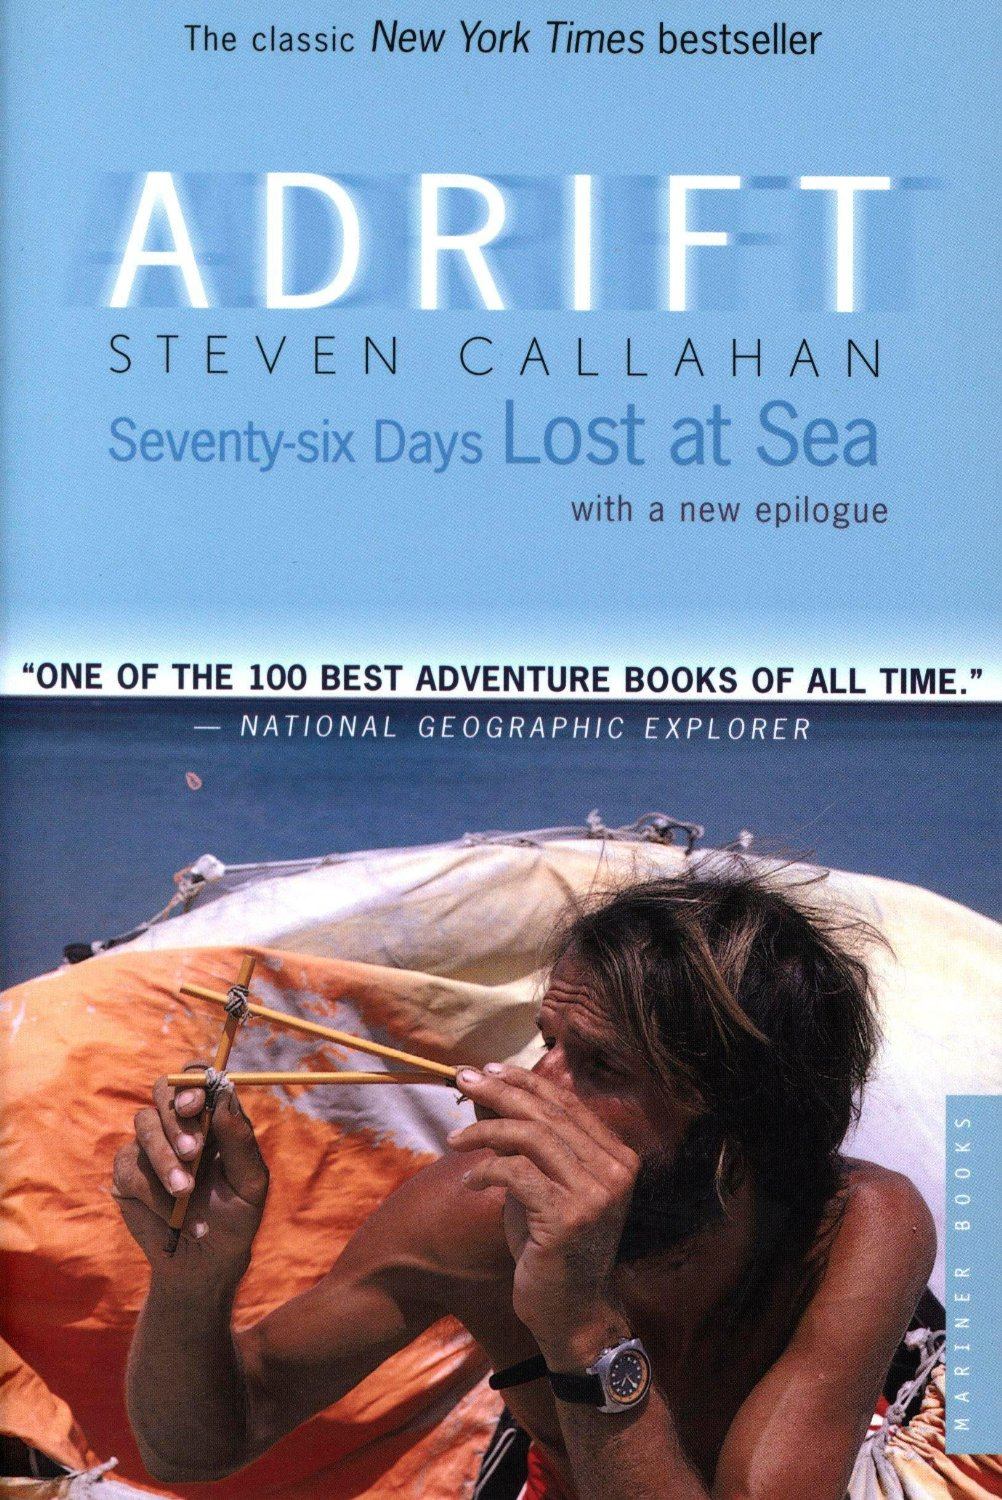 Adrift: 76 Days Lost at Sea by Steven Callahan